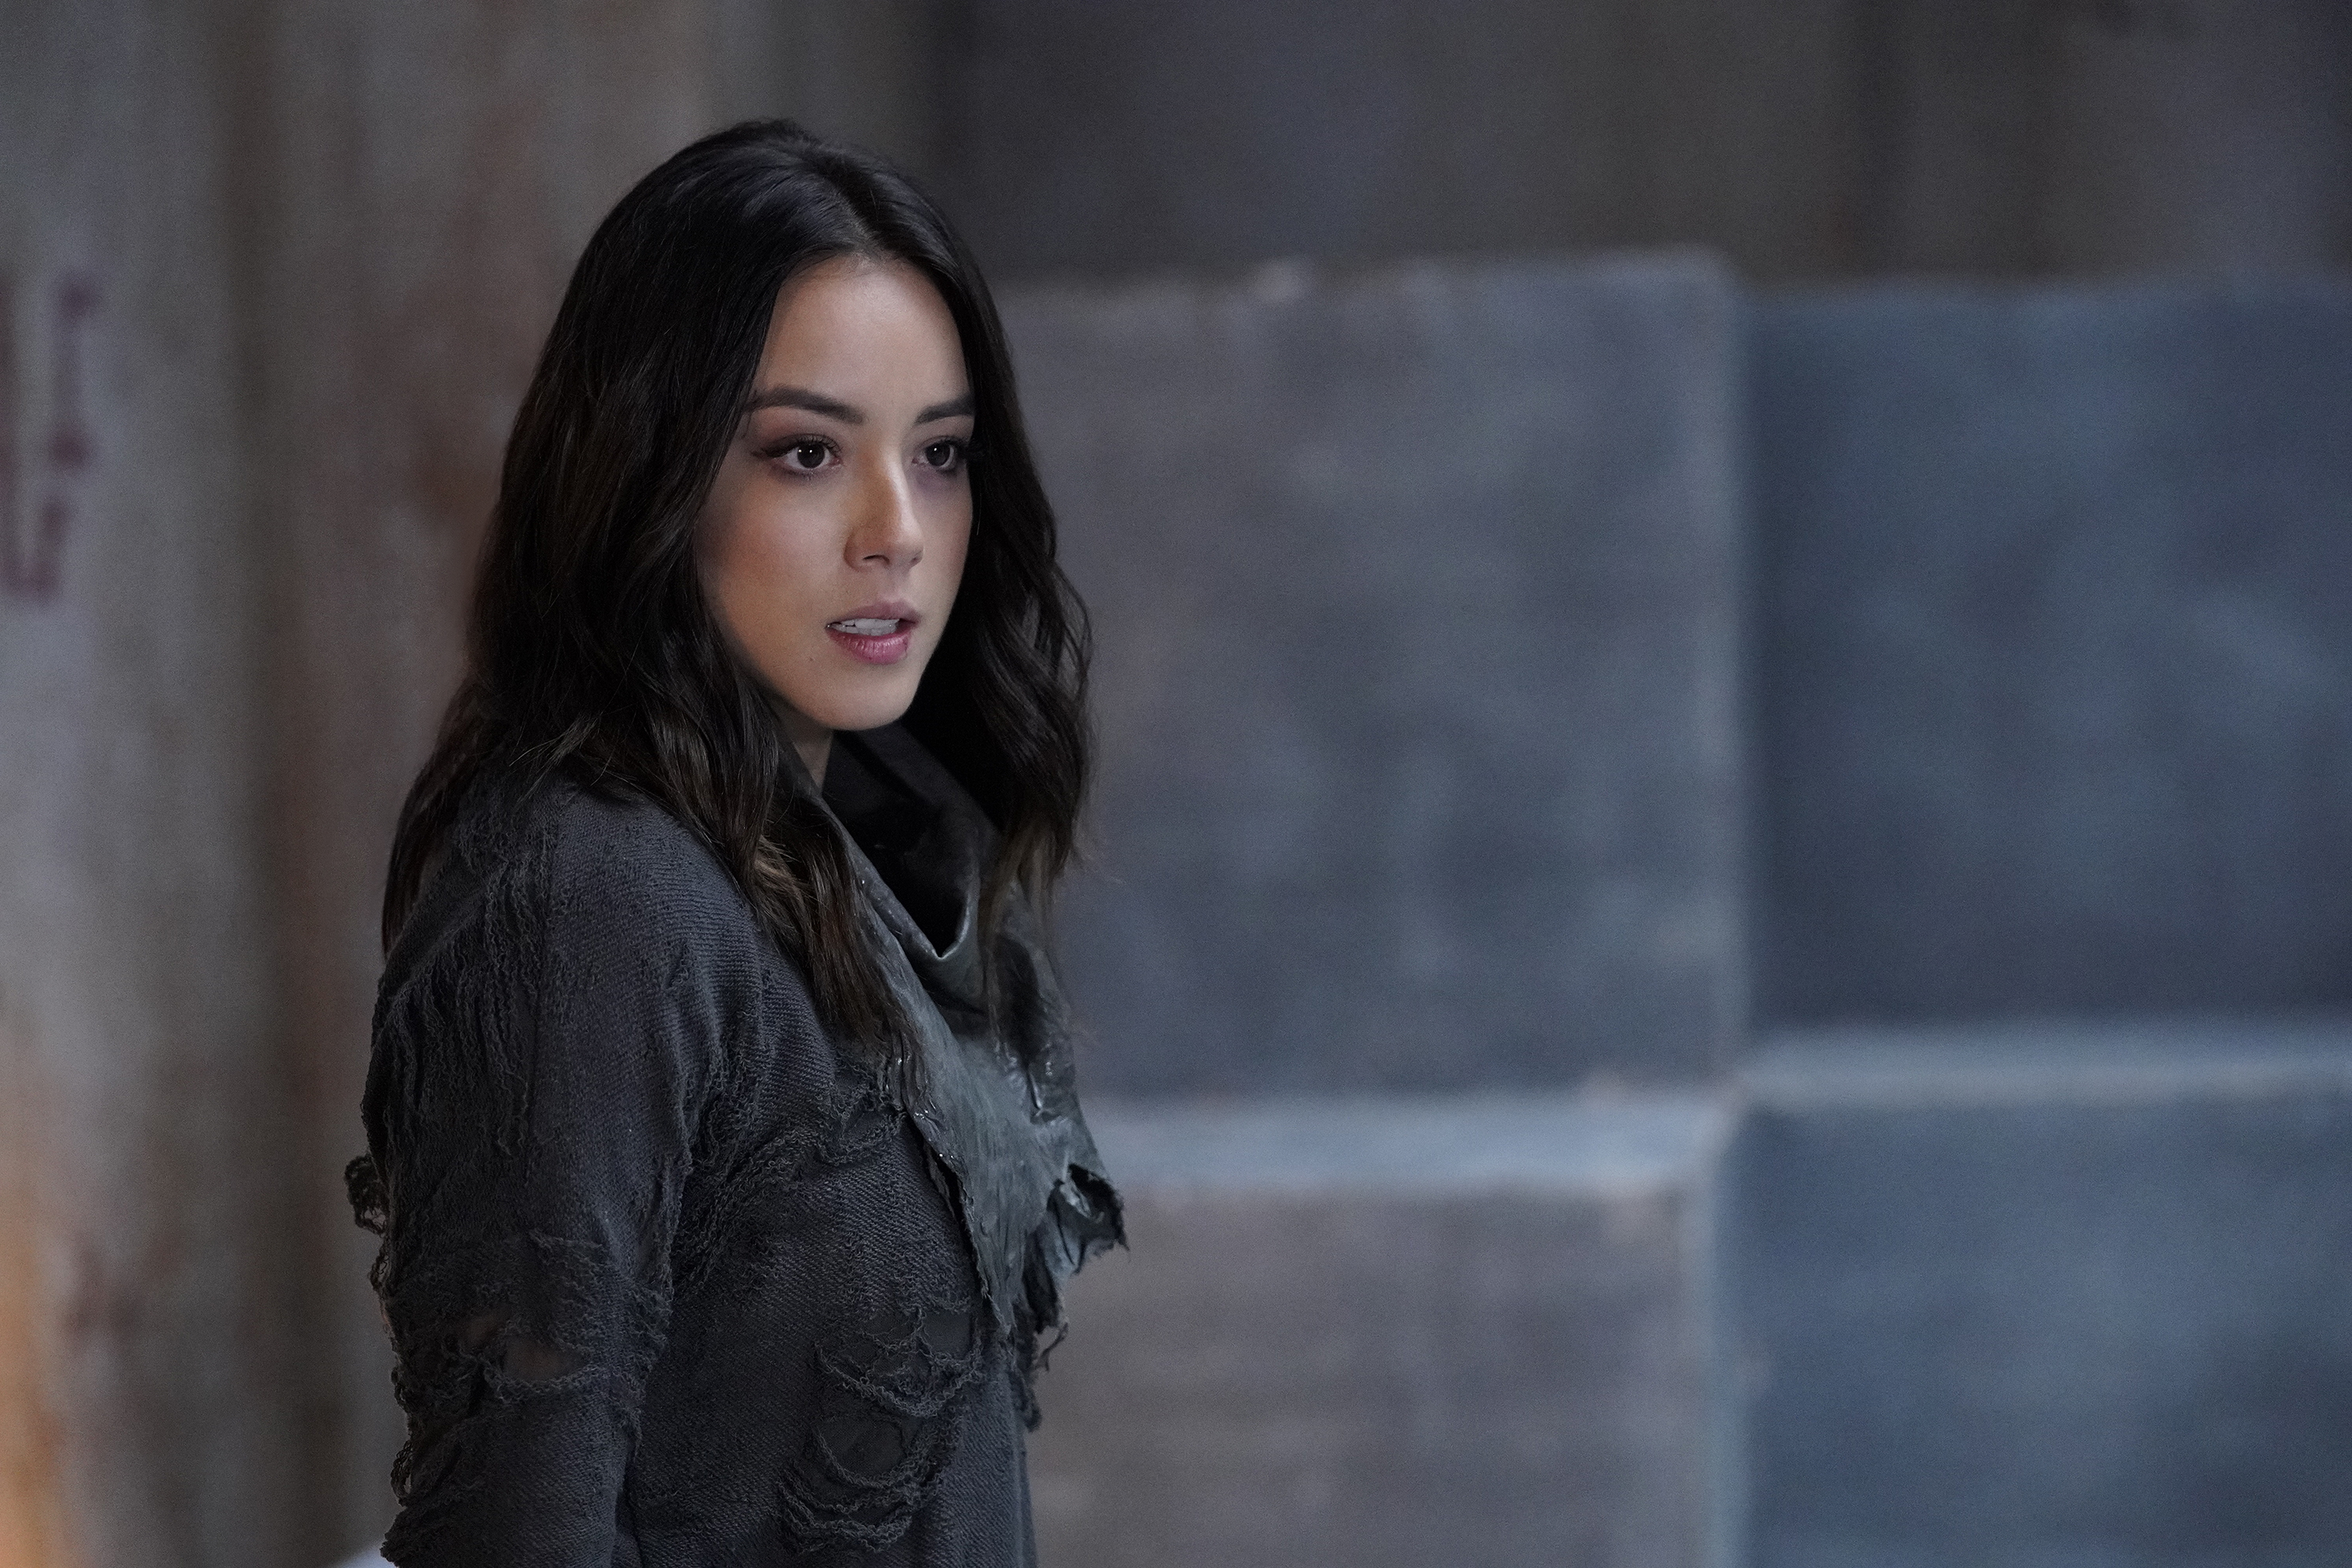 Chloe Bennet Daisy Johnson Hd Wallpaper Background Image